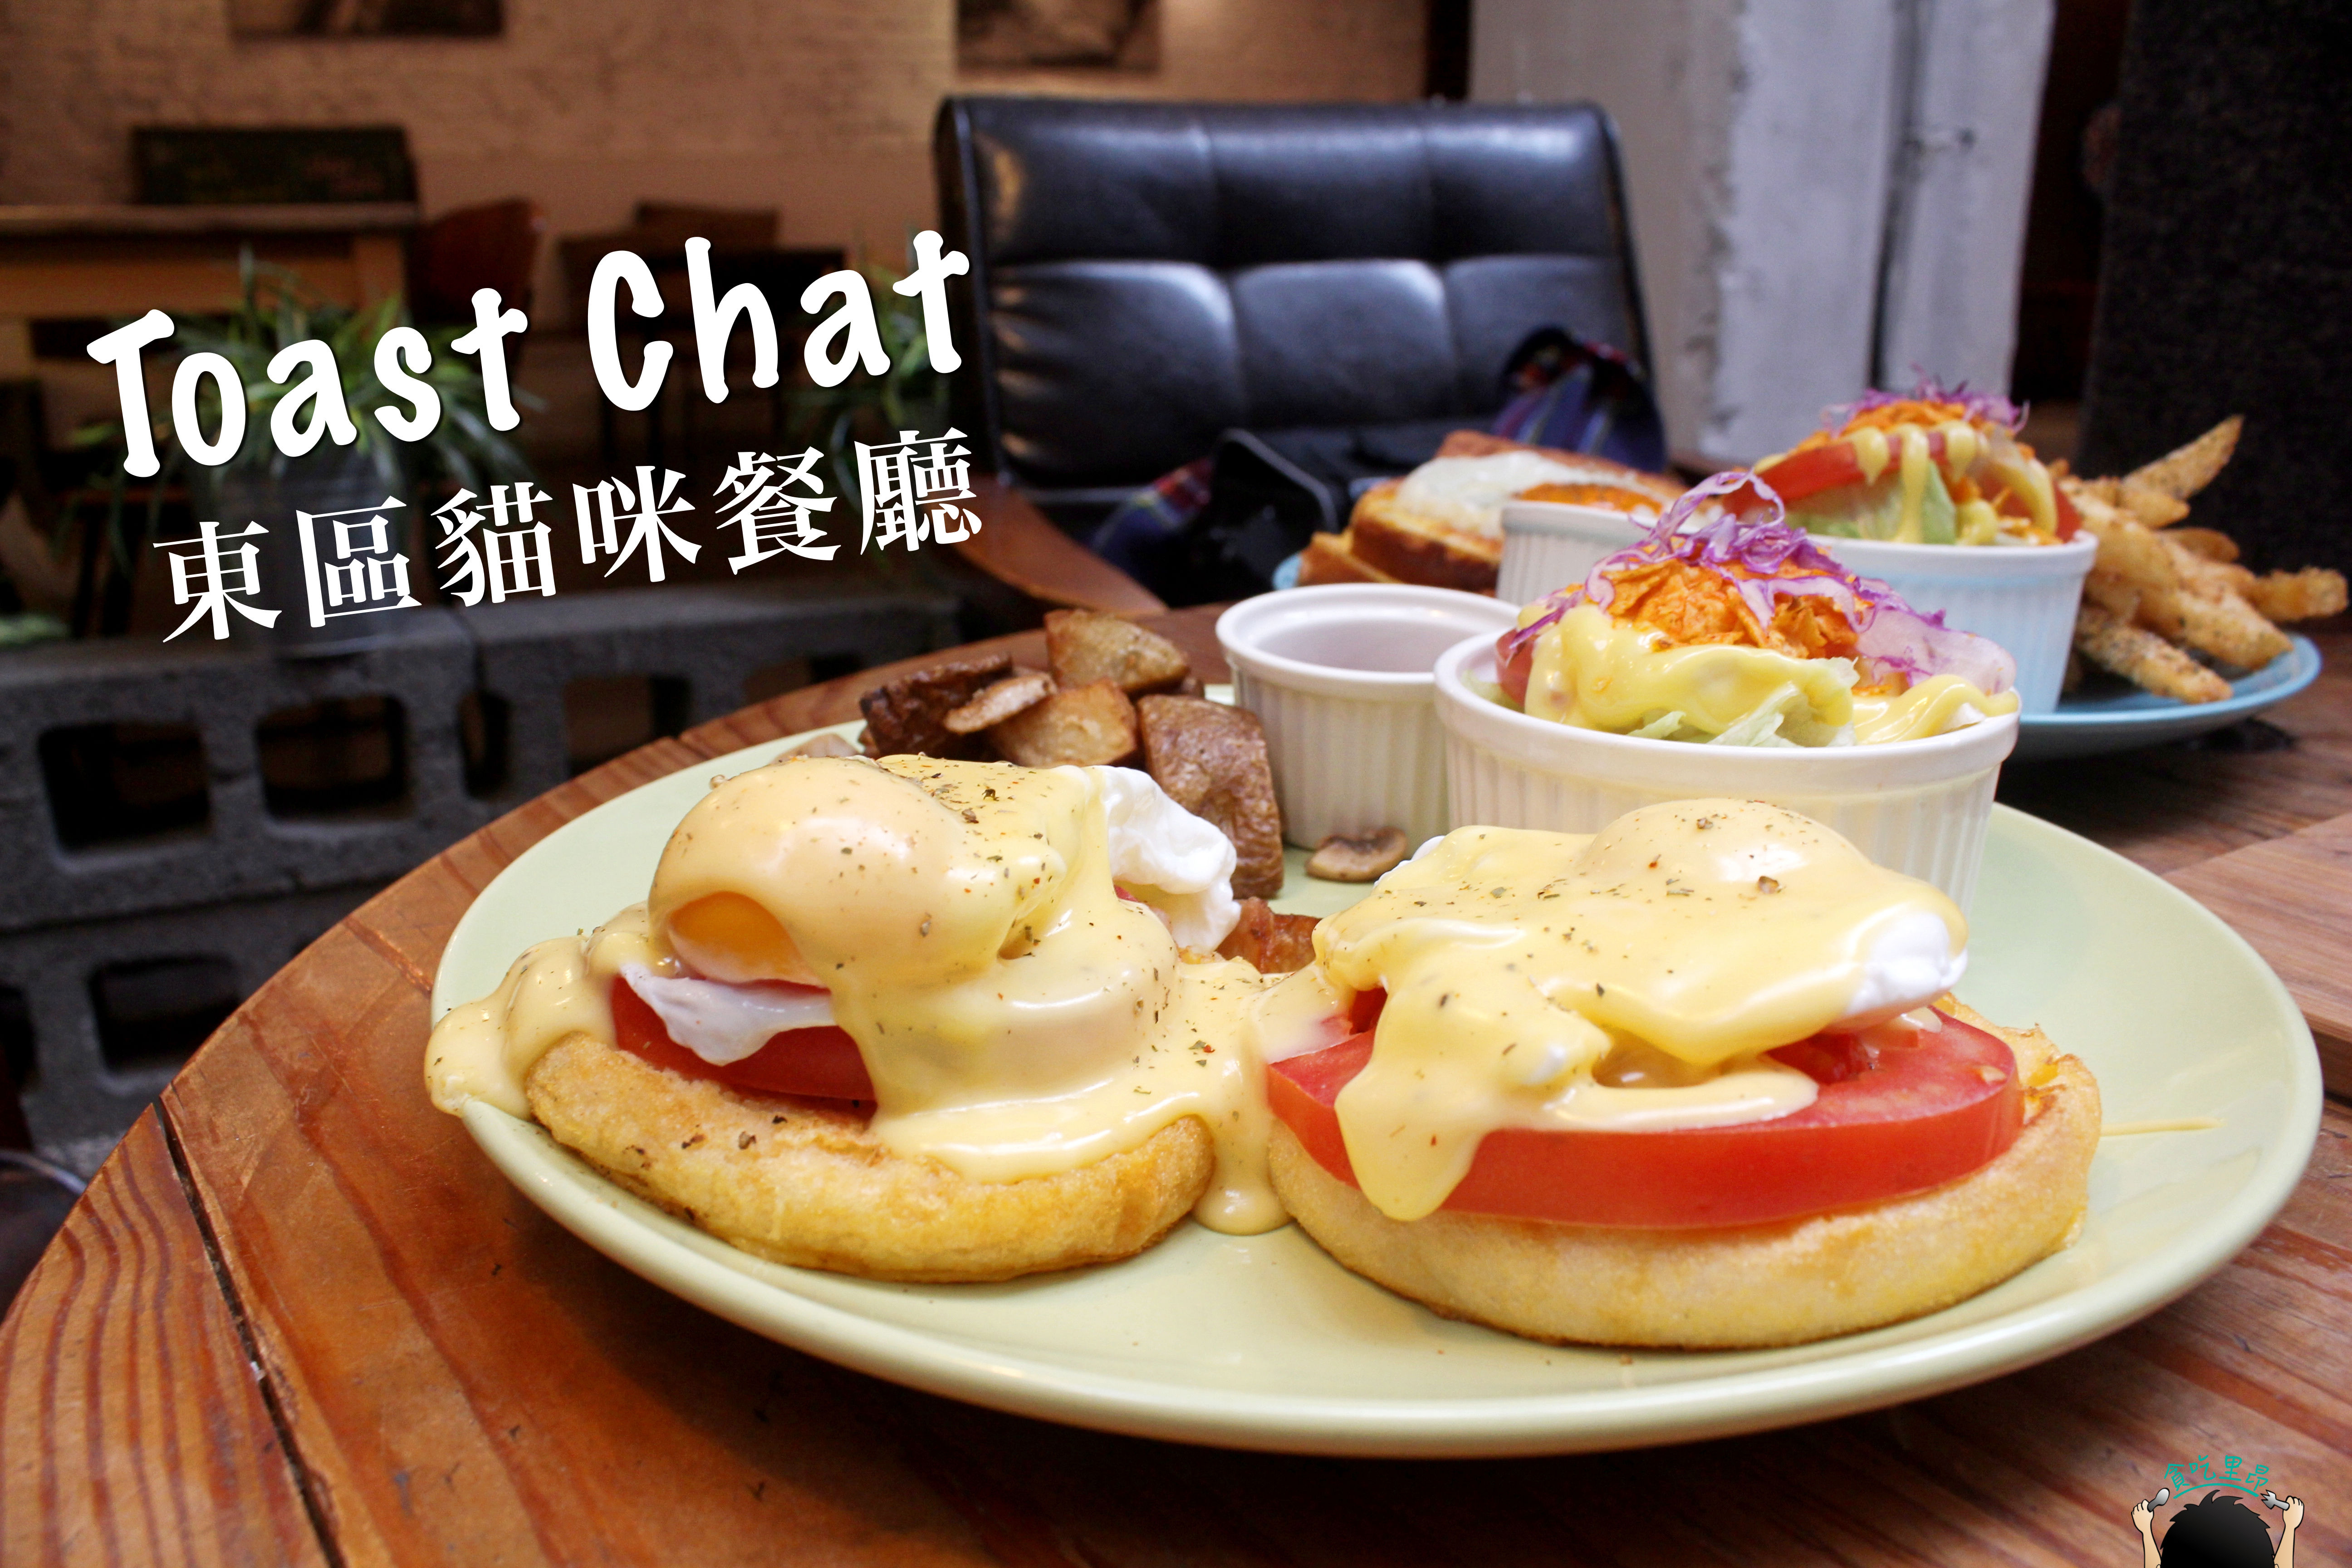 toast chat 封面.bmp